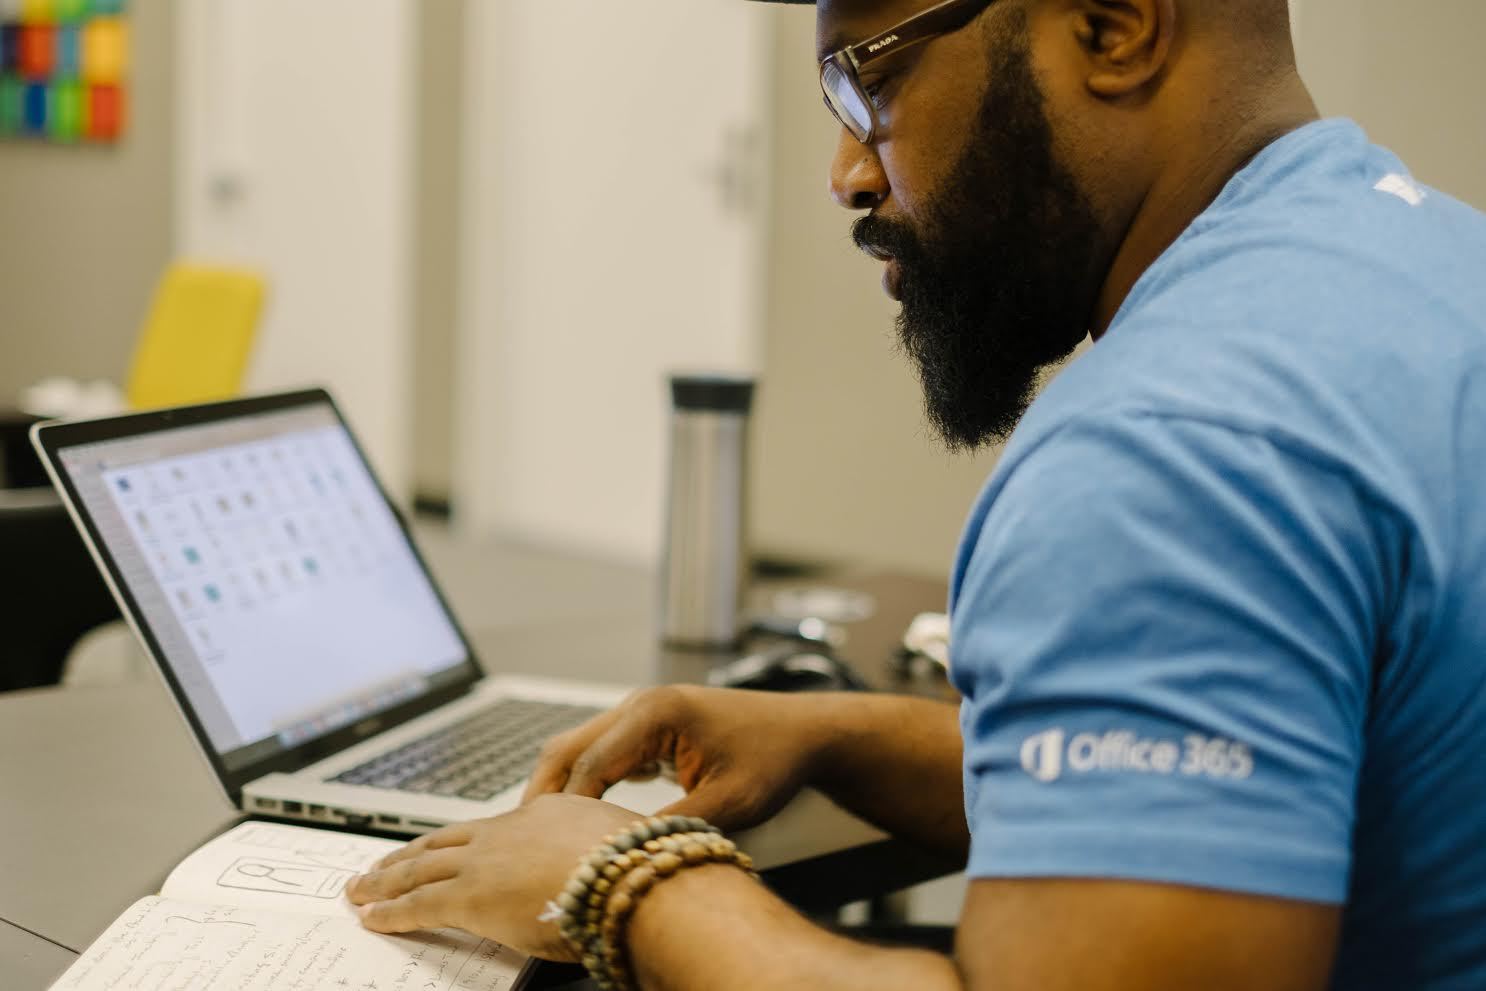 Jeremy Williams working on UX design